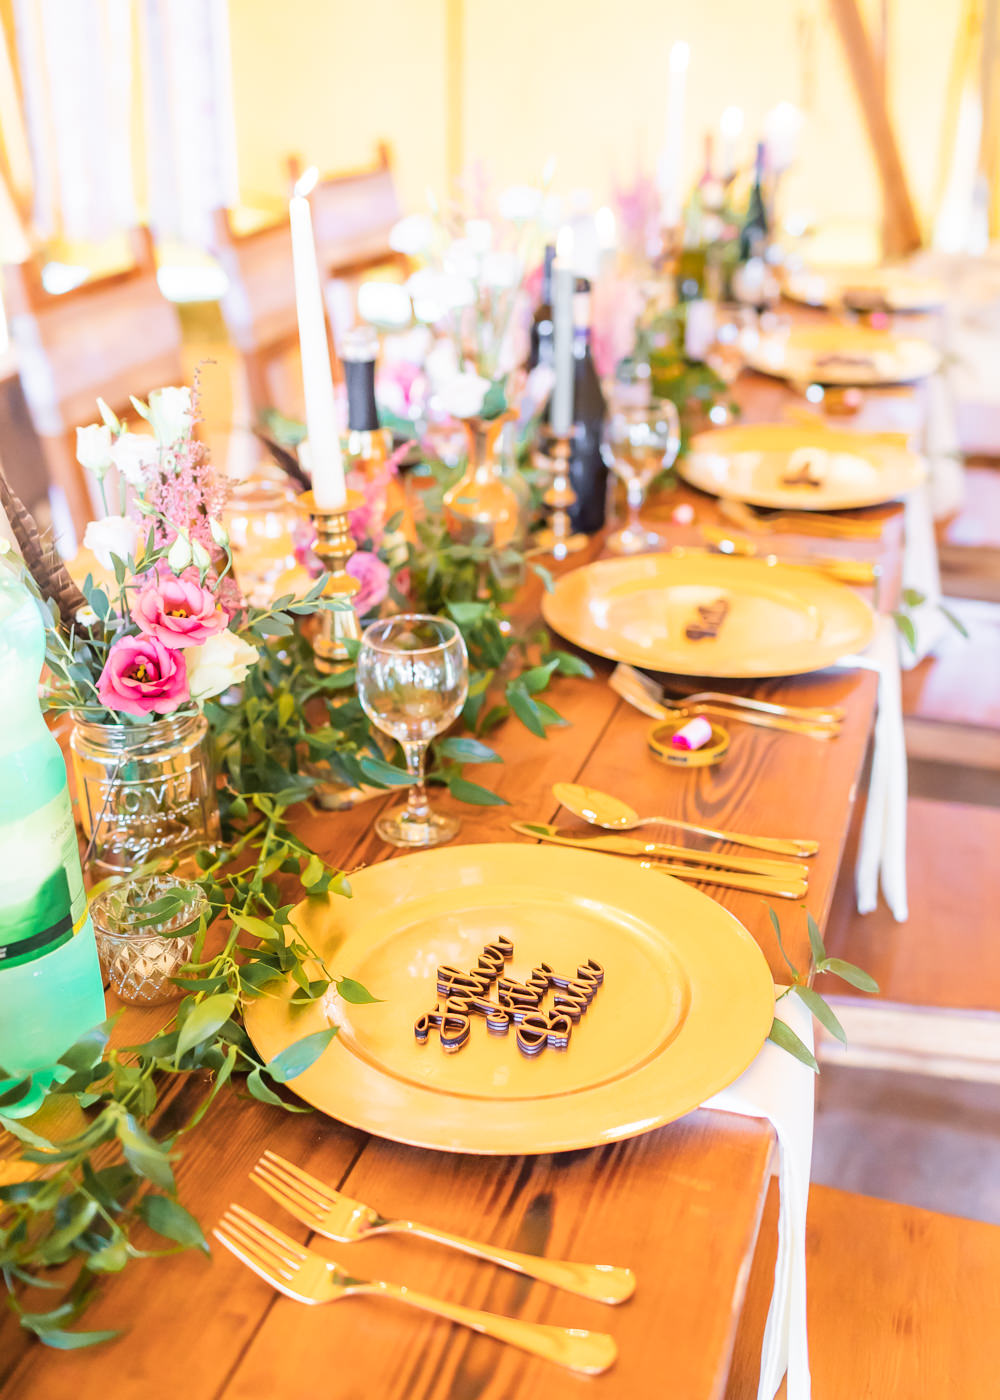 Gold Charger Plate Laser Cut Place Name Flowers Floral Greenery Bedfordshire Tipi Wedding Natalie Stevenson Photography